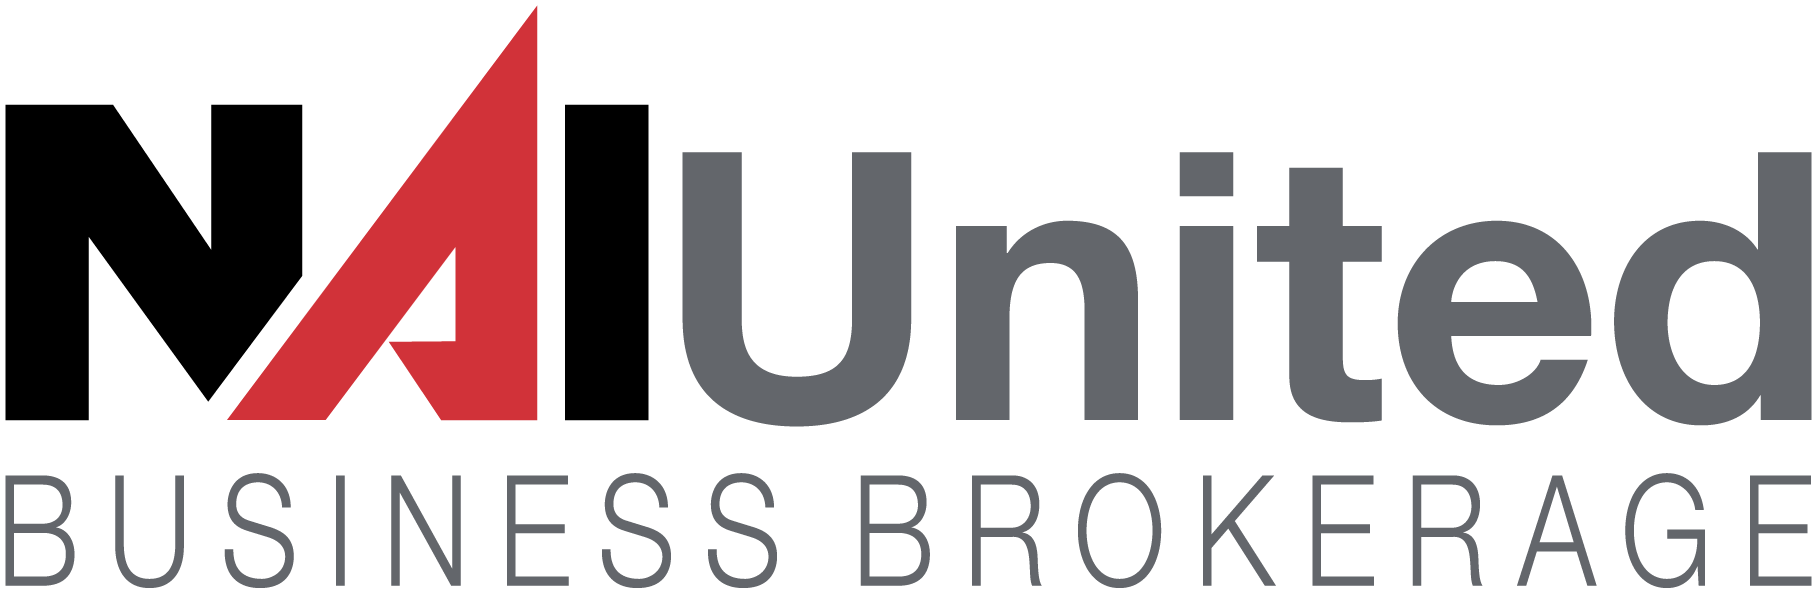 NAI United Business Brokerage